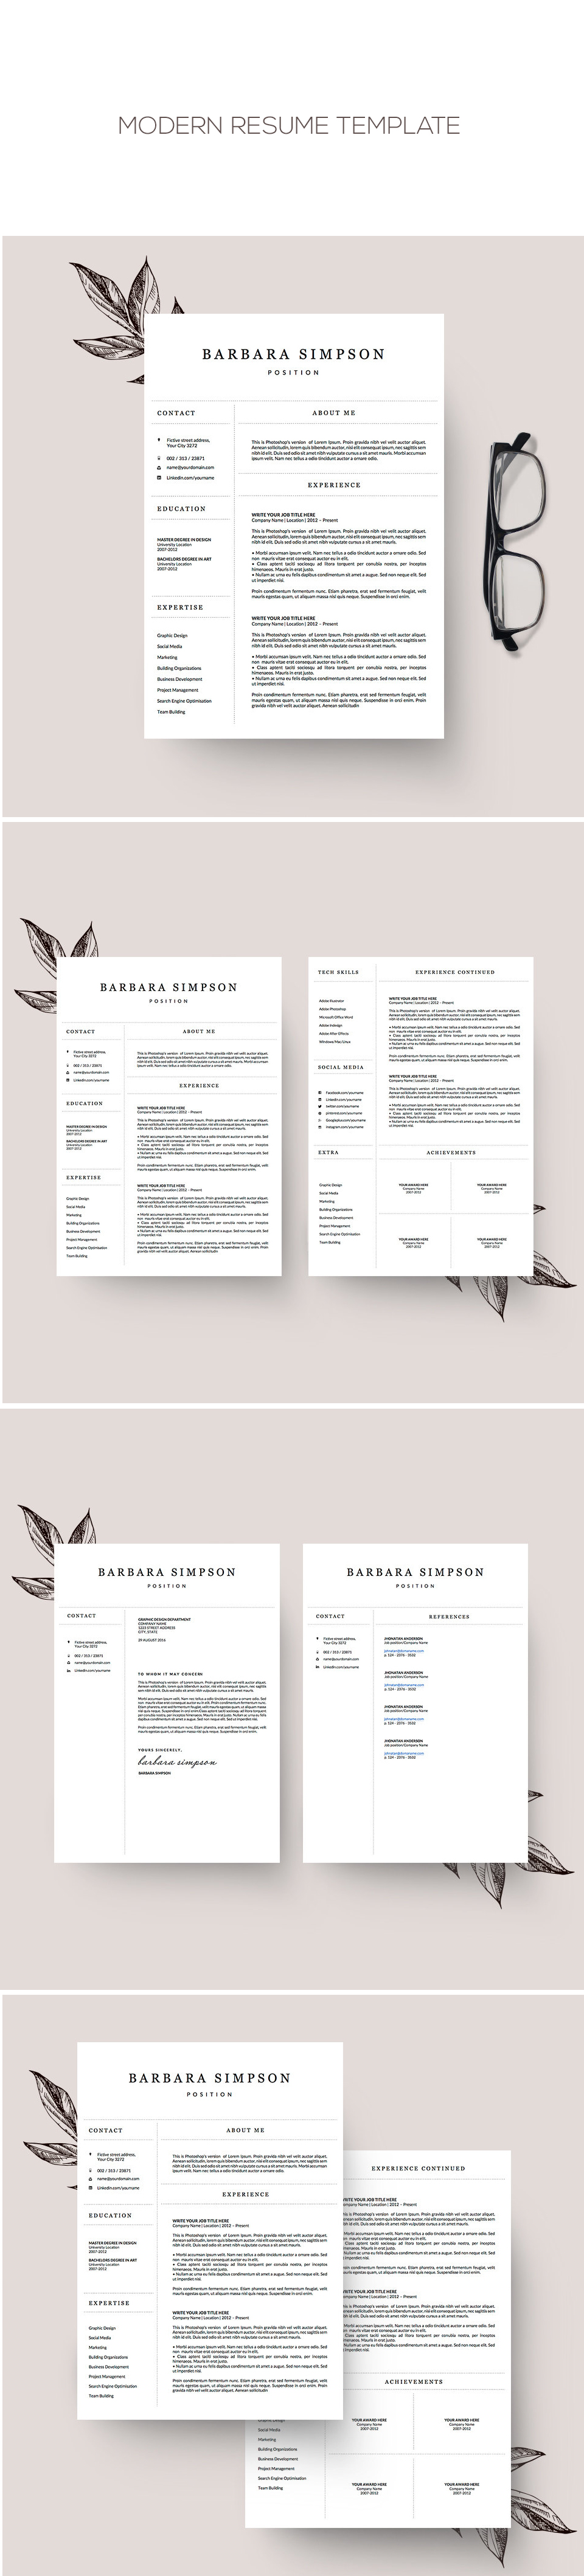 Professional 4 Page Resume Template For Word // Instant